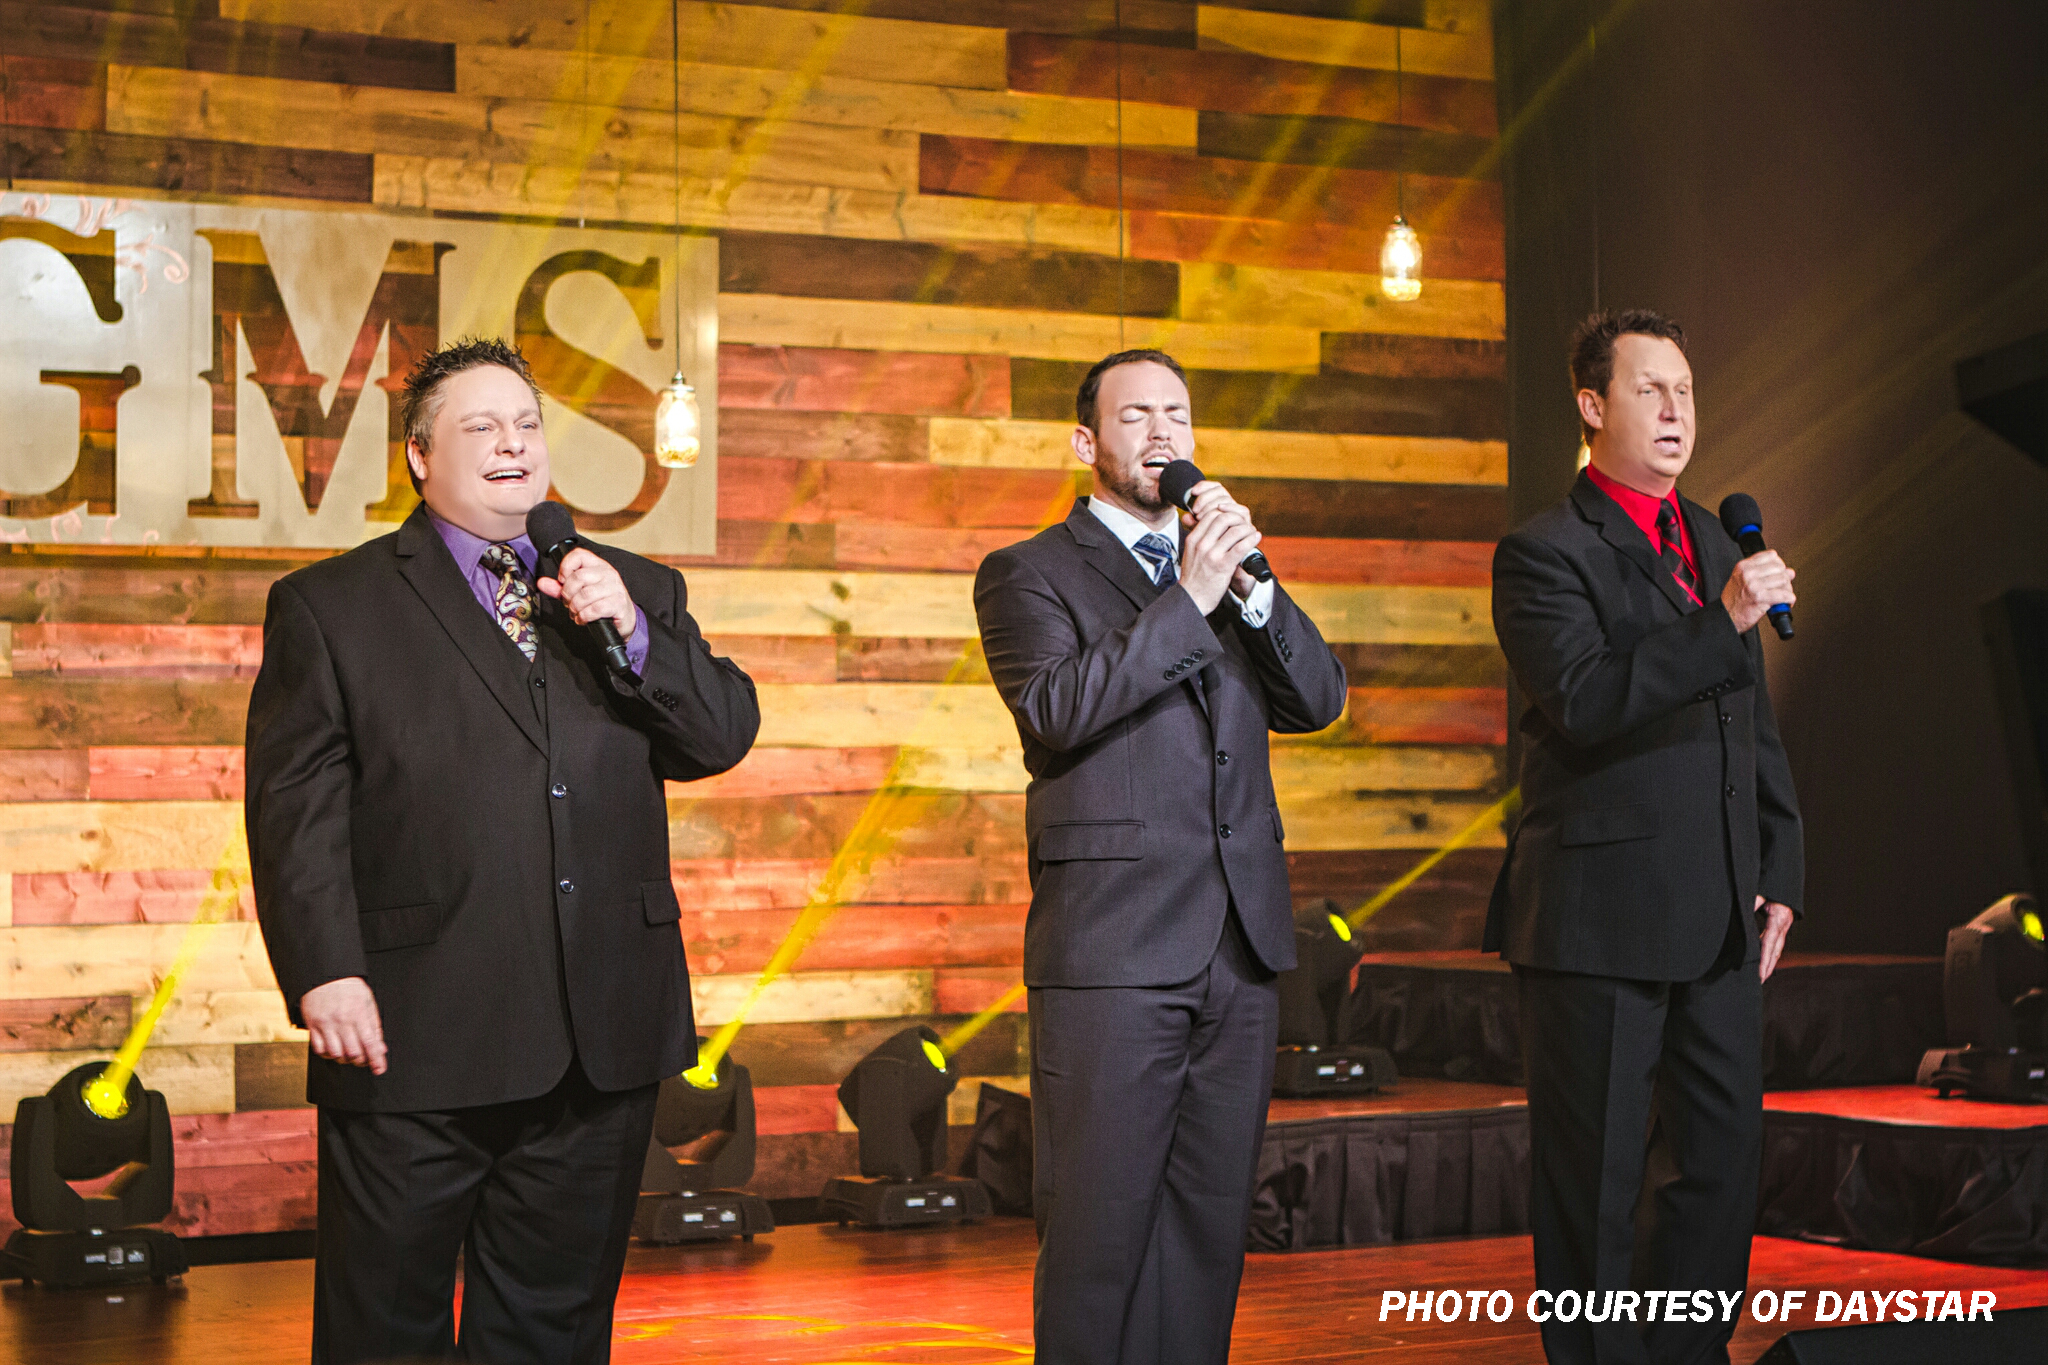 Steve Hess & Southern Salvation to Appear on Daystar's Gospel Music Showcase